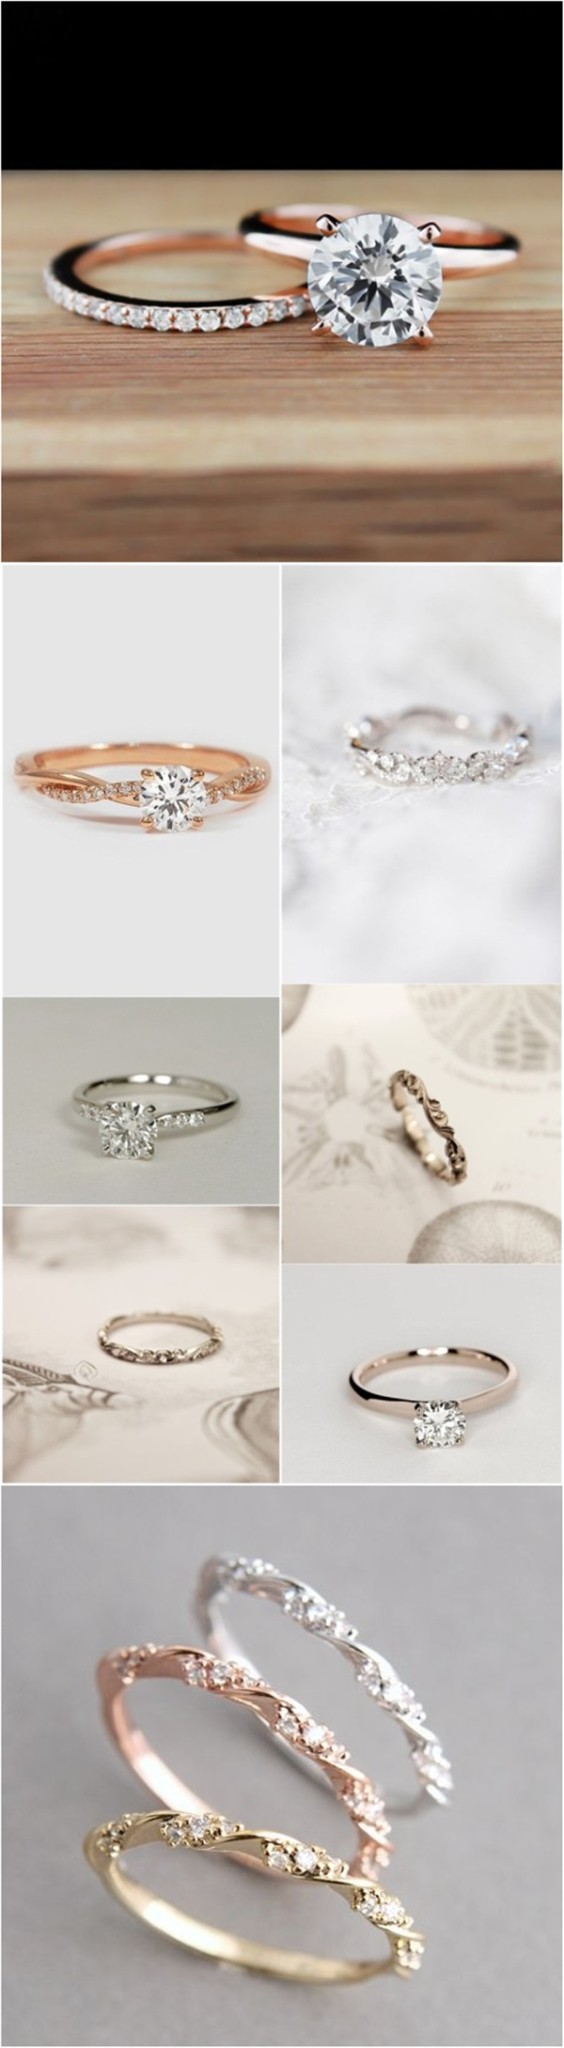 Simple wedding rings ideas for your big day